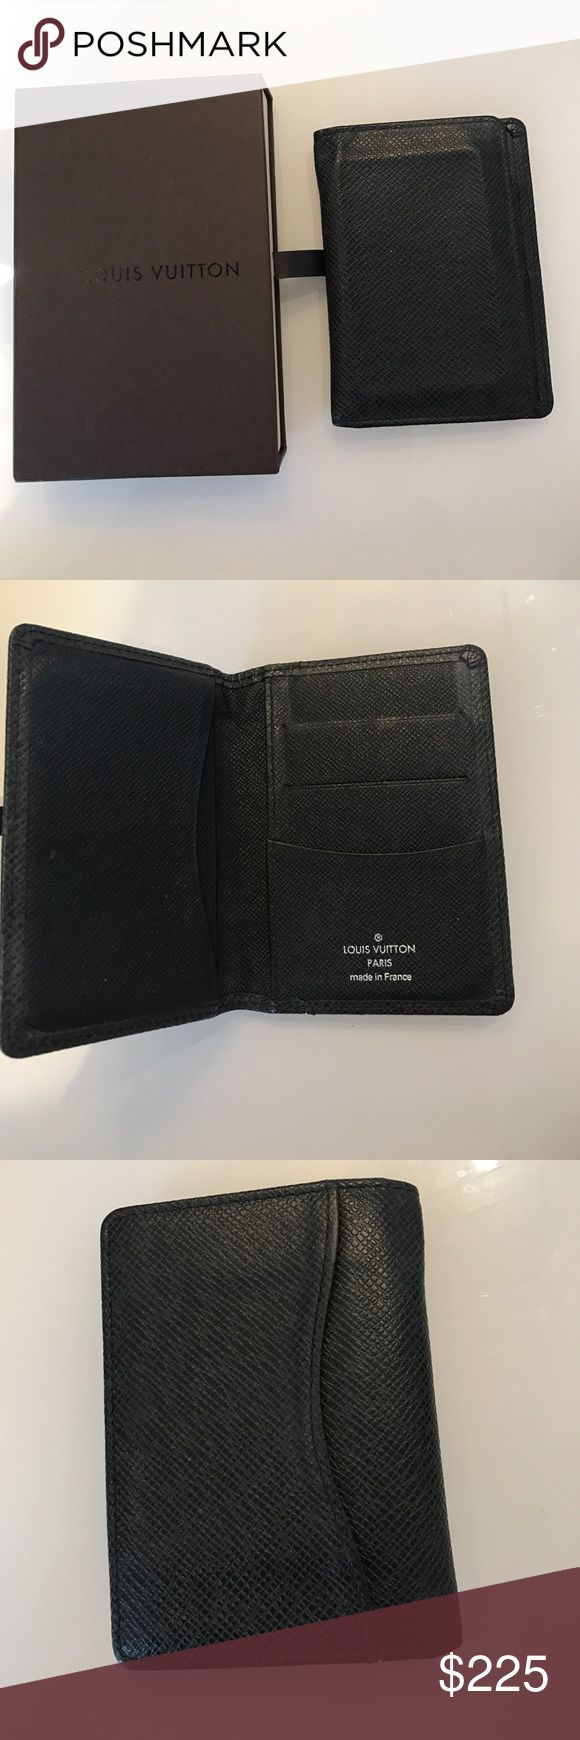 Louis Vuitton men's wallet Pocket organizer in black ardoise leather. In excellent condition but due to the softness of the leather the credit card shape is a bit outlined. Please see photo. A great buy !!! Louis Vuitton Accessories Key & Card Holders